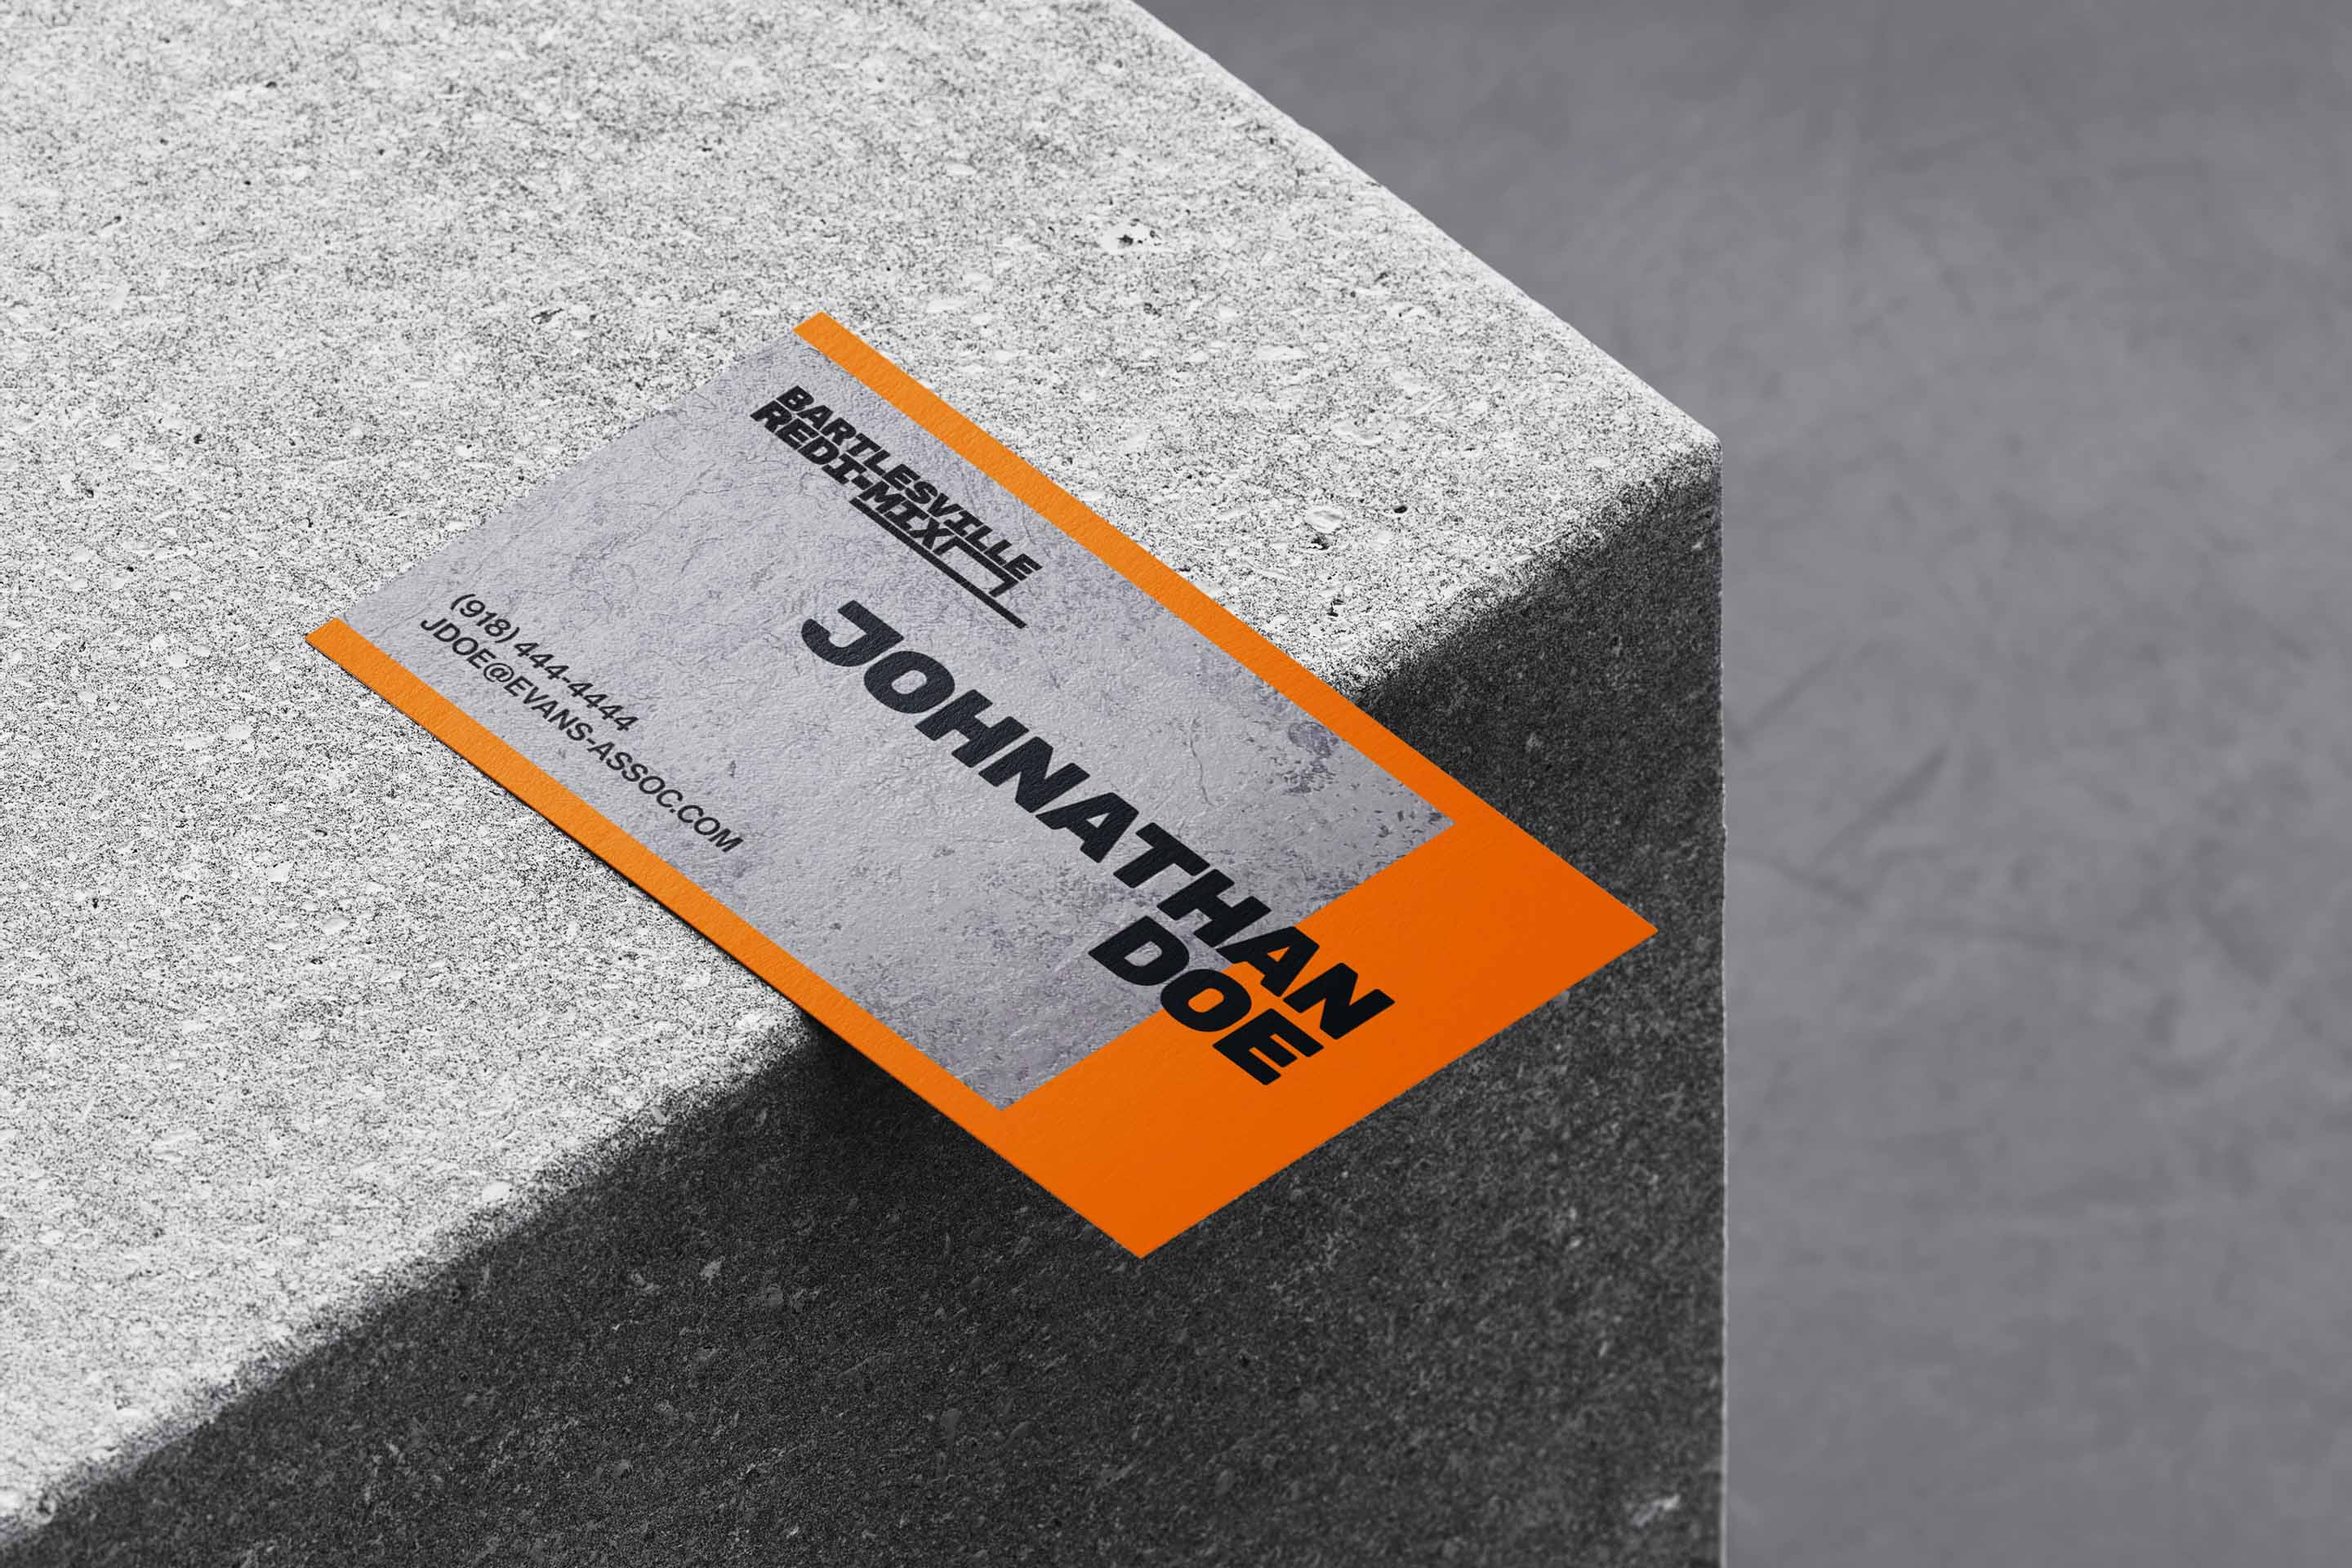 The back side of an orange business card featuring the Bartlesville Redi-Mix logo concept